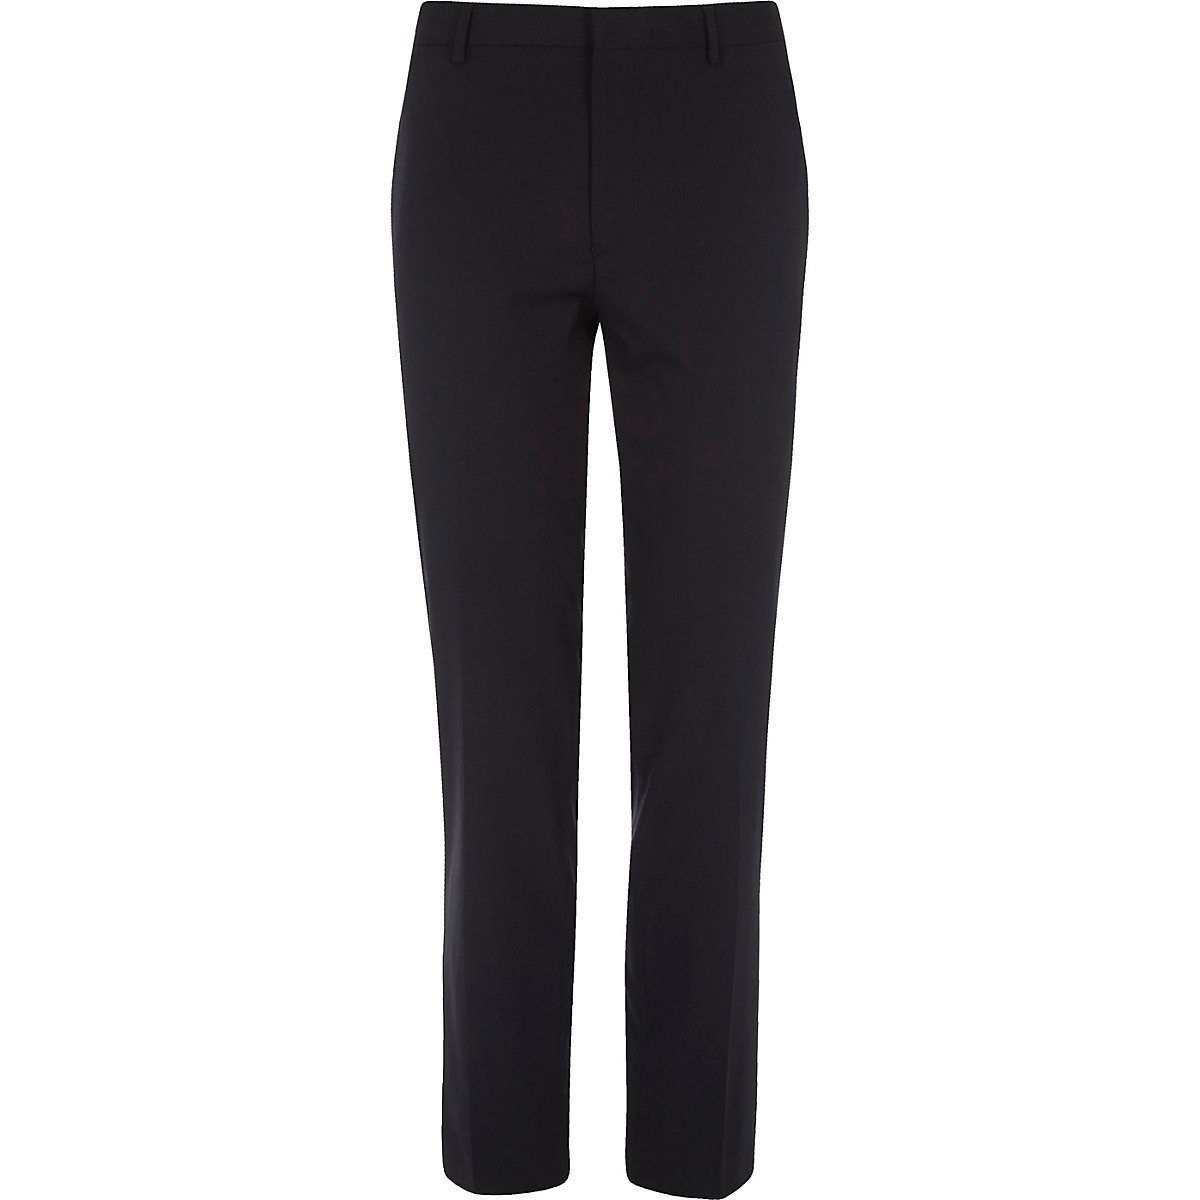 Big and Tall navy suit pants